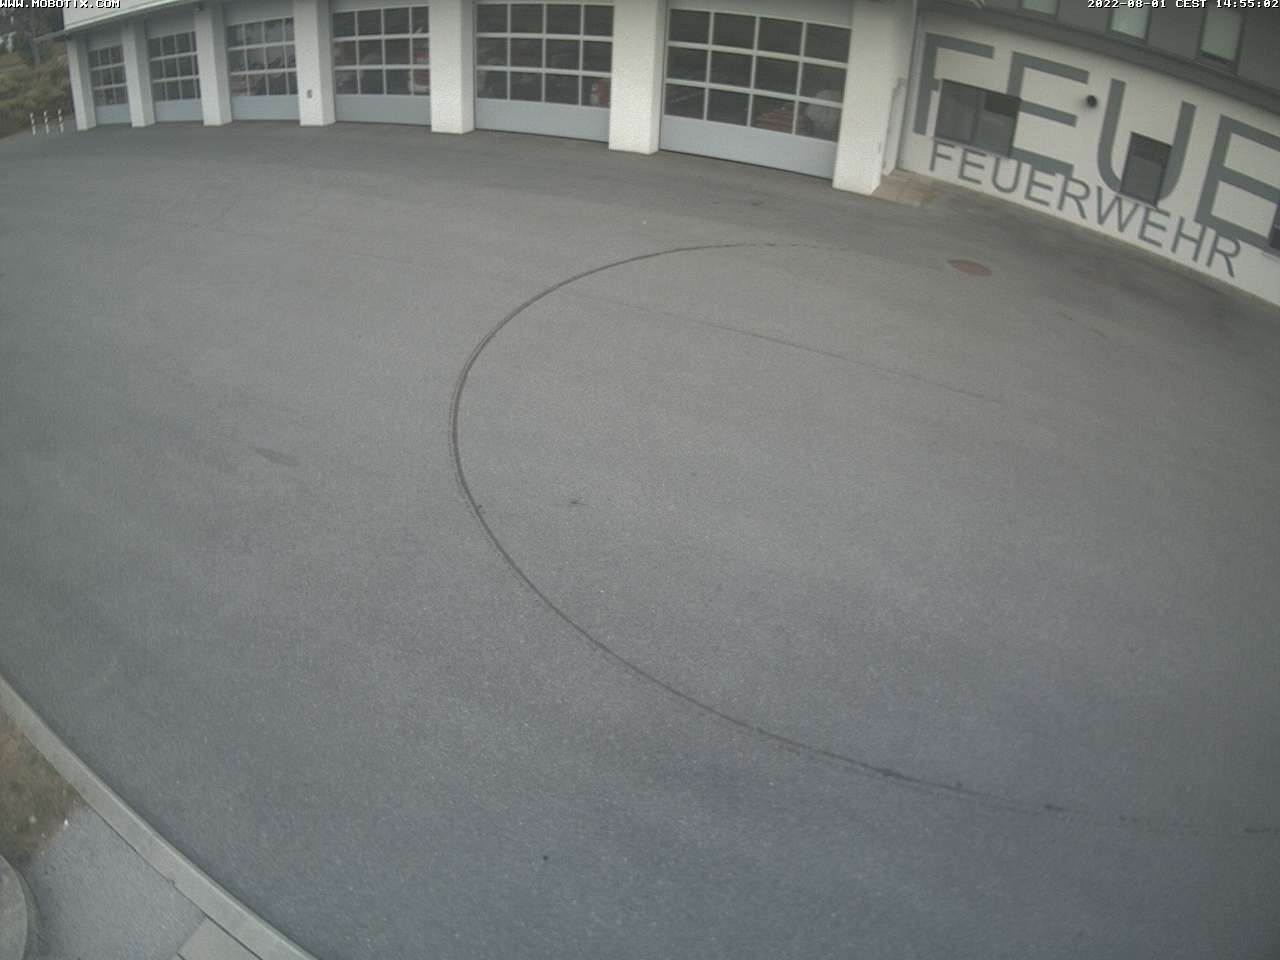 WebCam_Vorplatz1